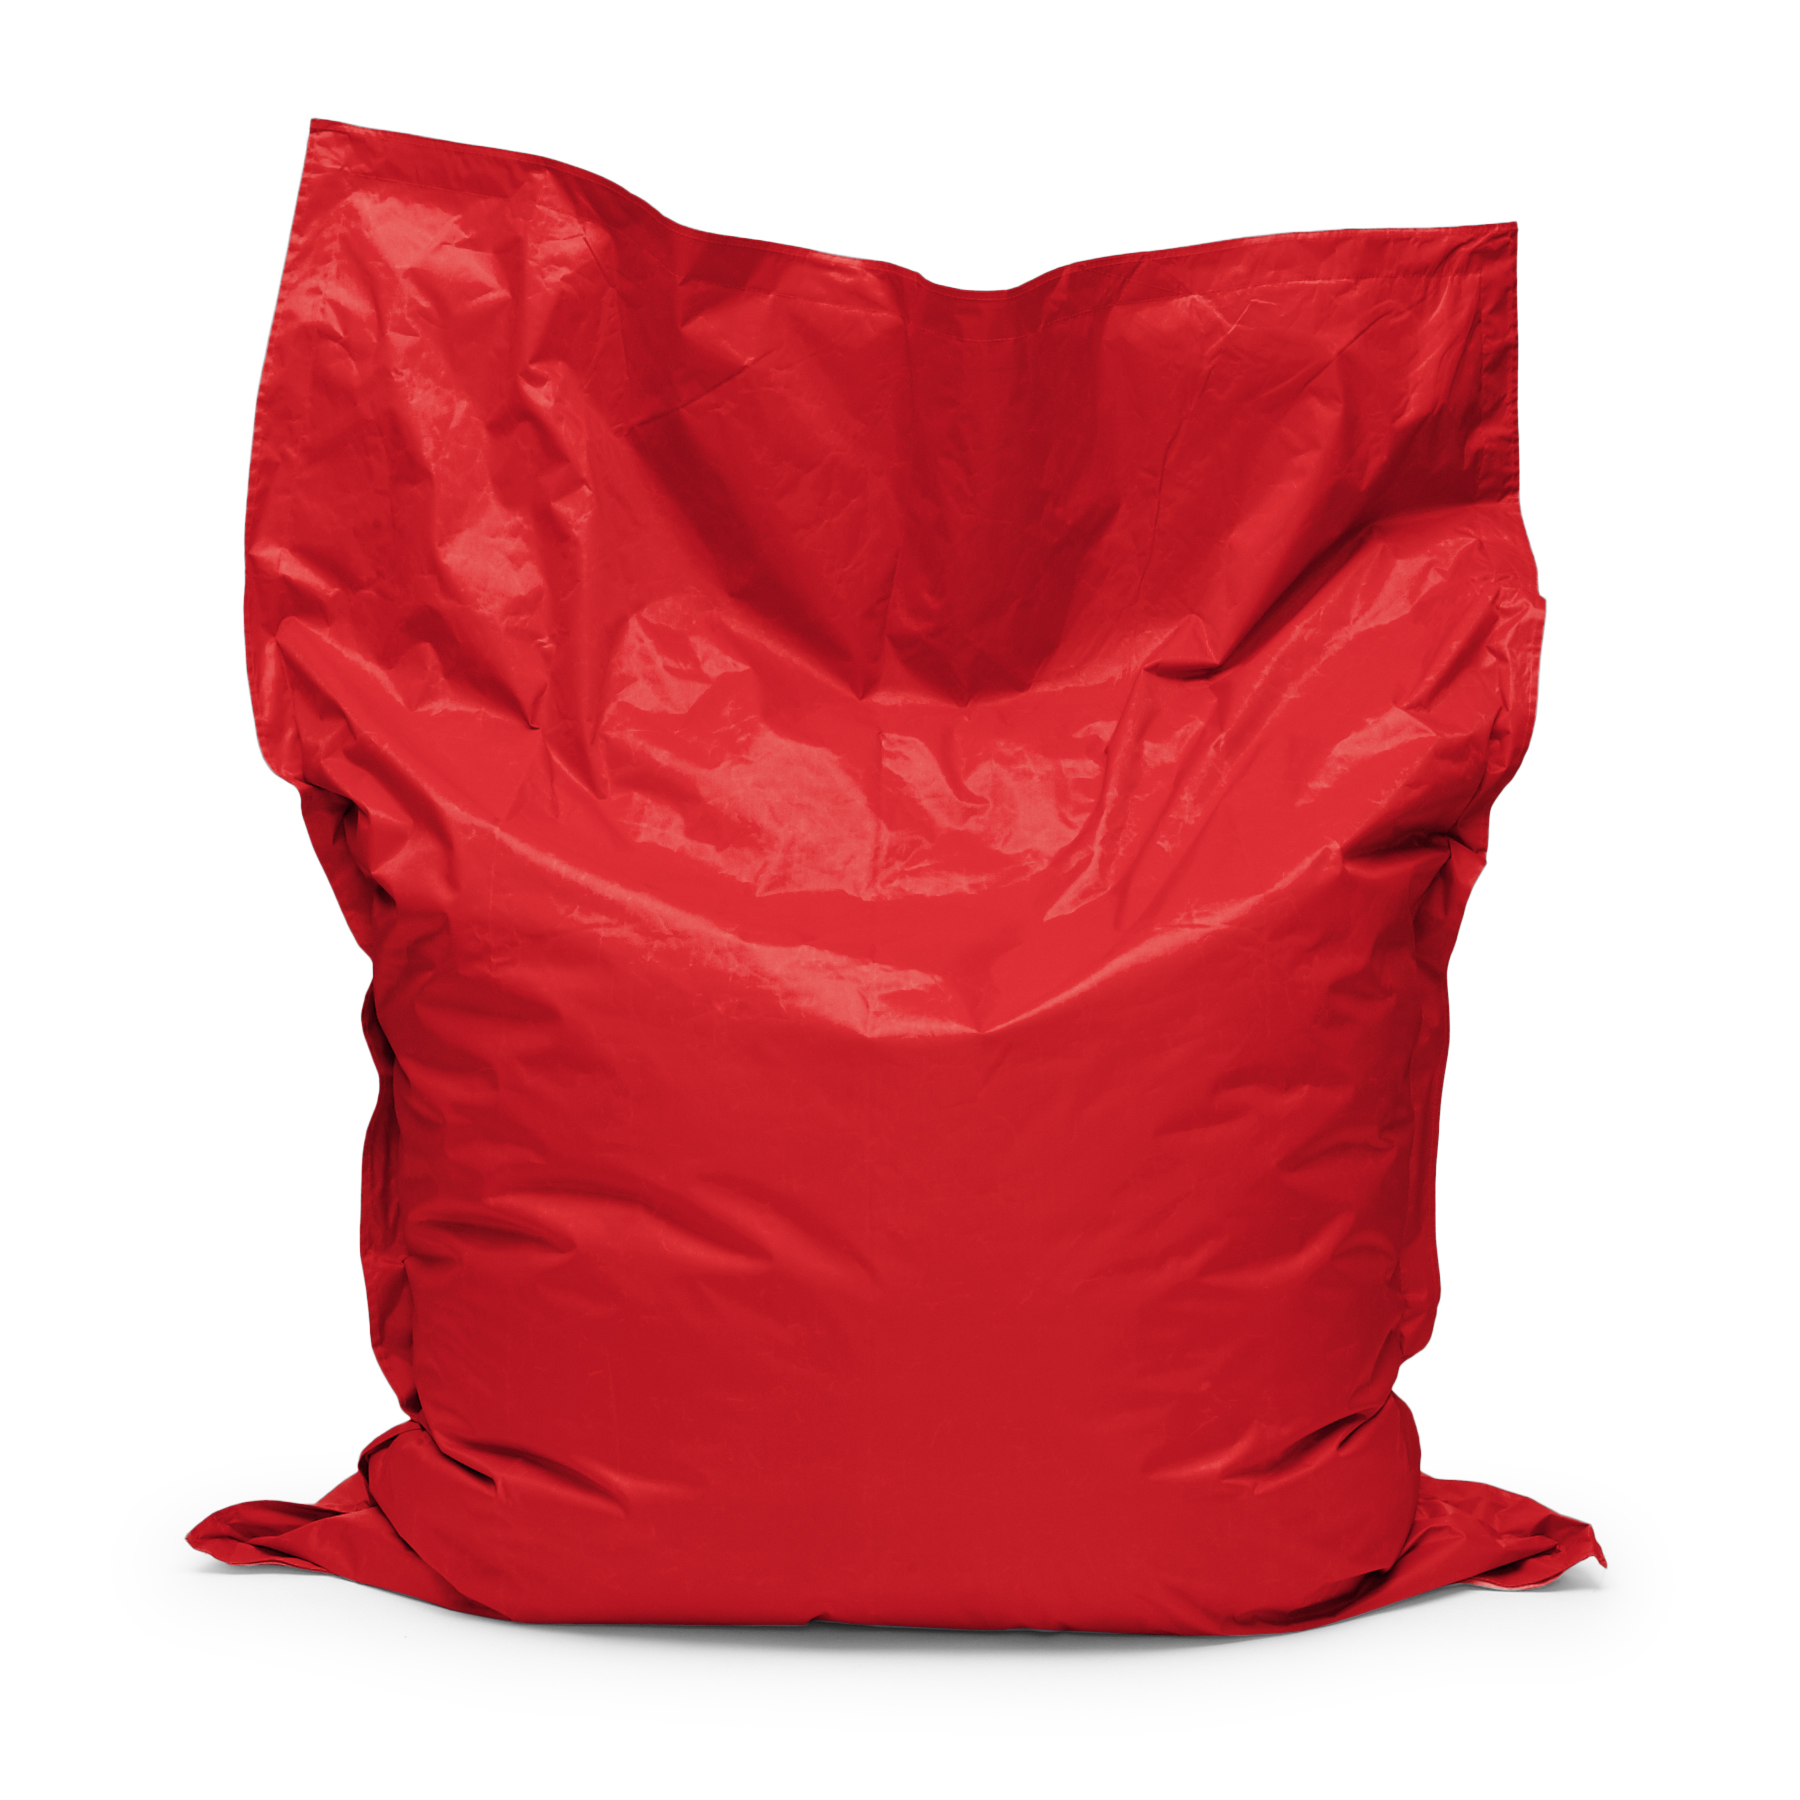 Red Bean Bag : Beanbagred from www.cultfurniturehire.com size 1800 x 1800 jpeg 986kB